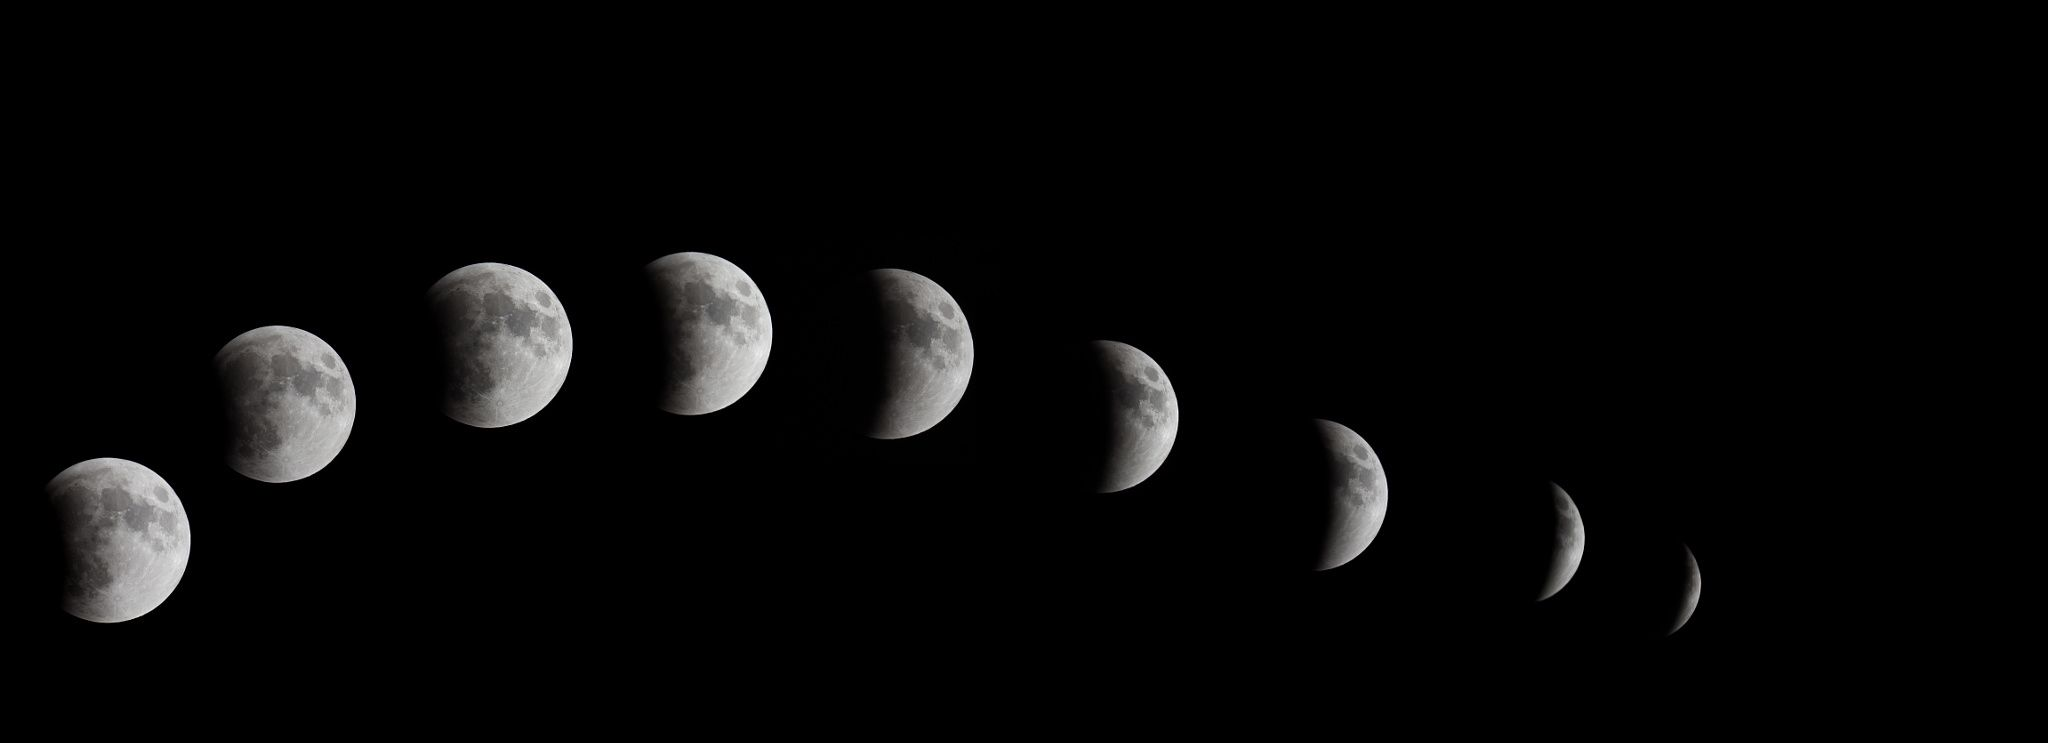 2015 lunar eclipse Pano - 2015 lunar eclipse Pano before the blood Moon